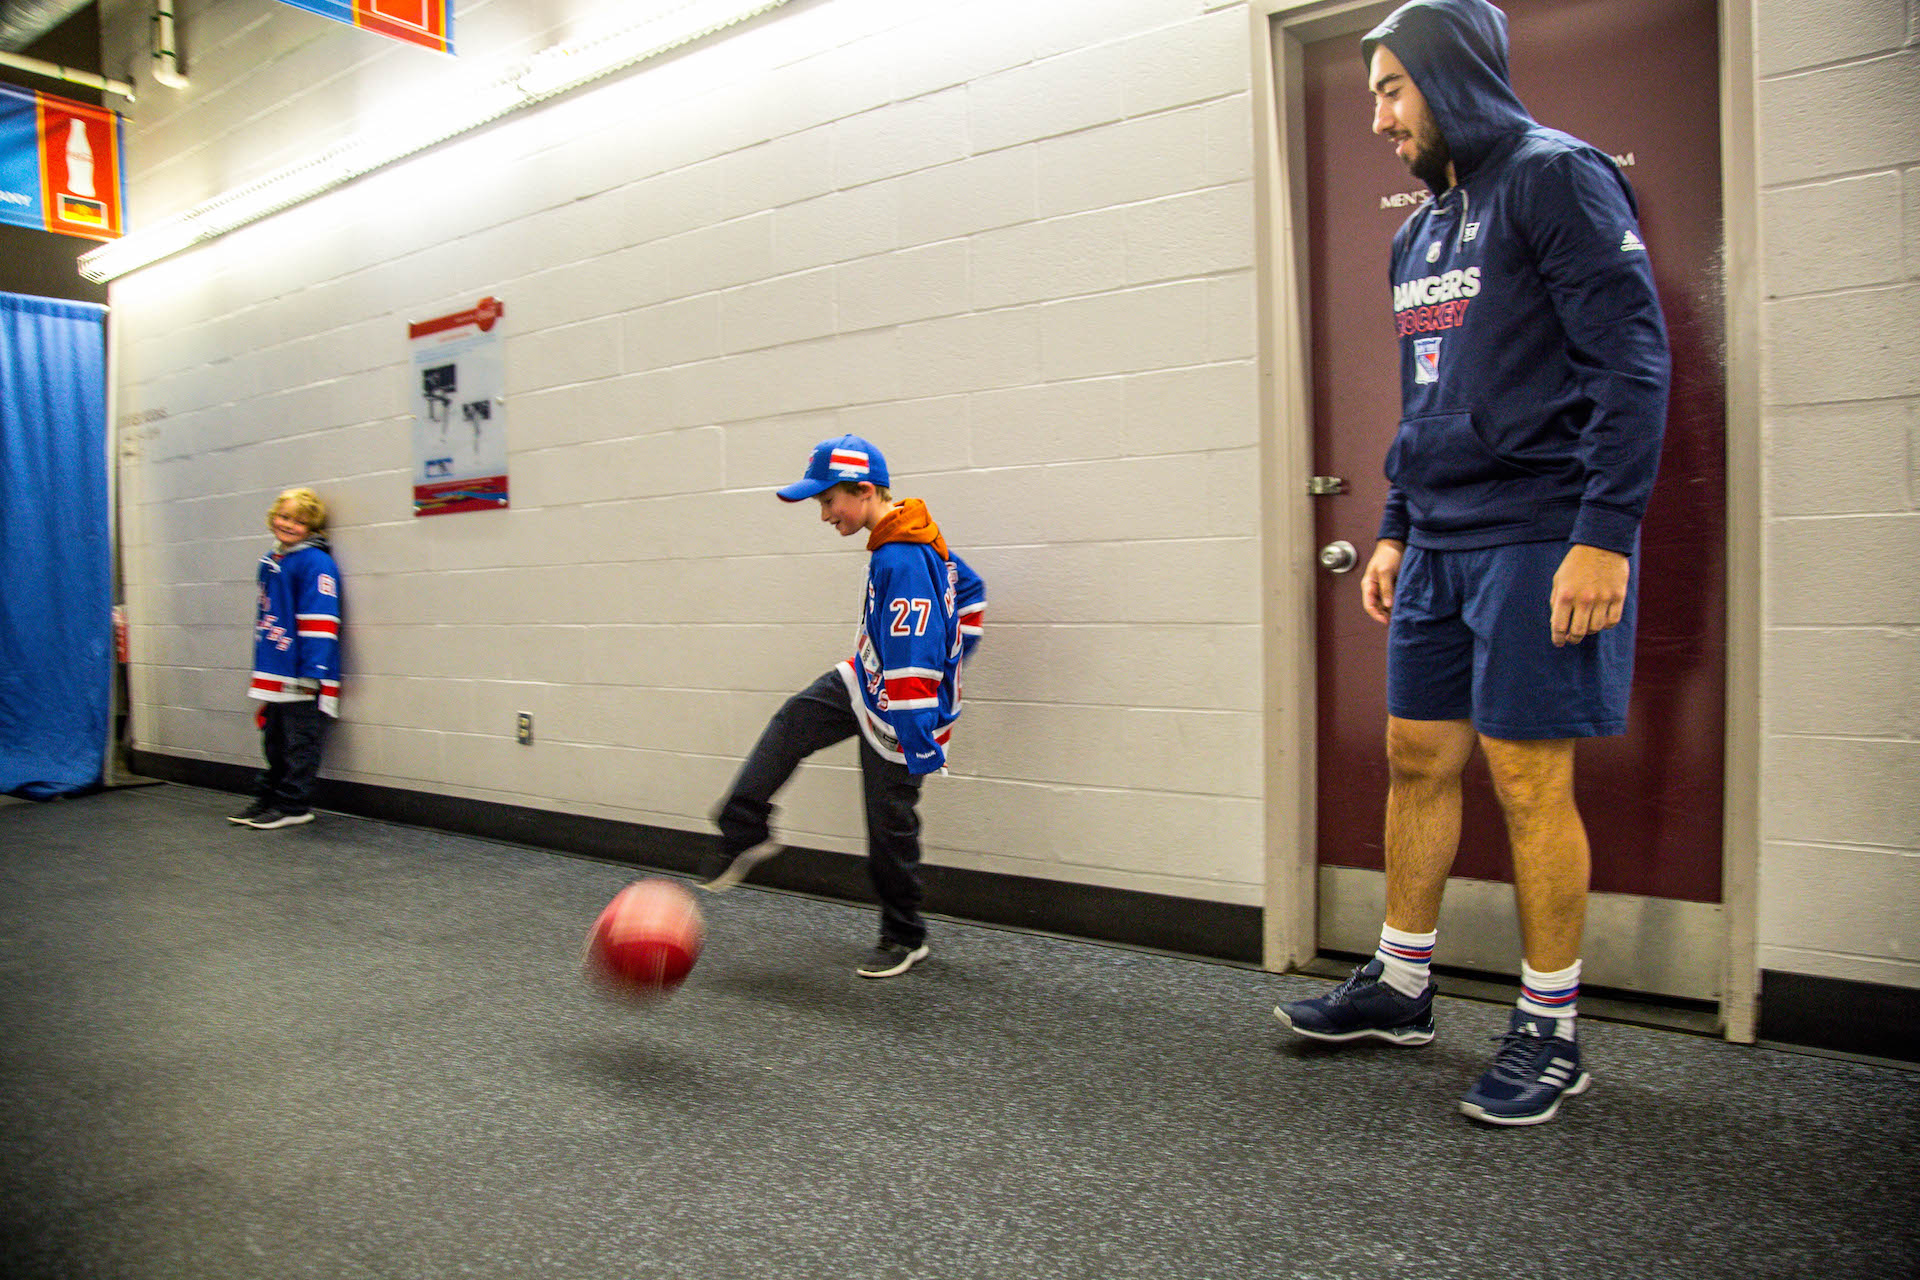 Kid kicking ball with adult at an arena